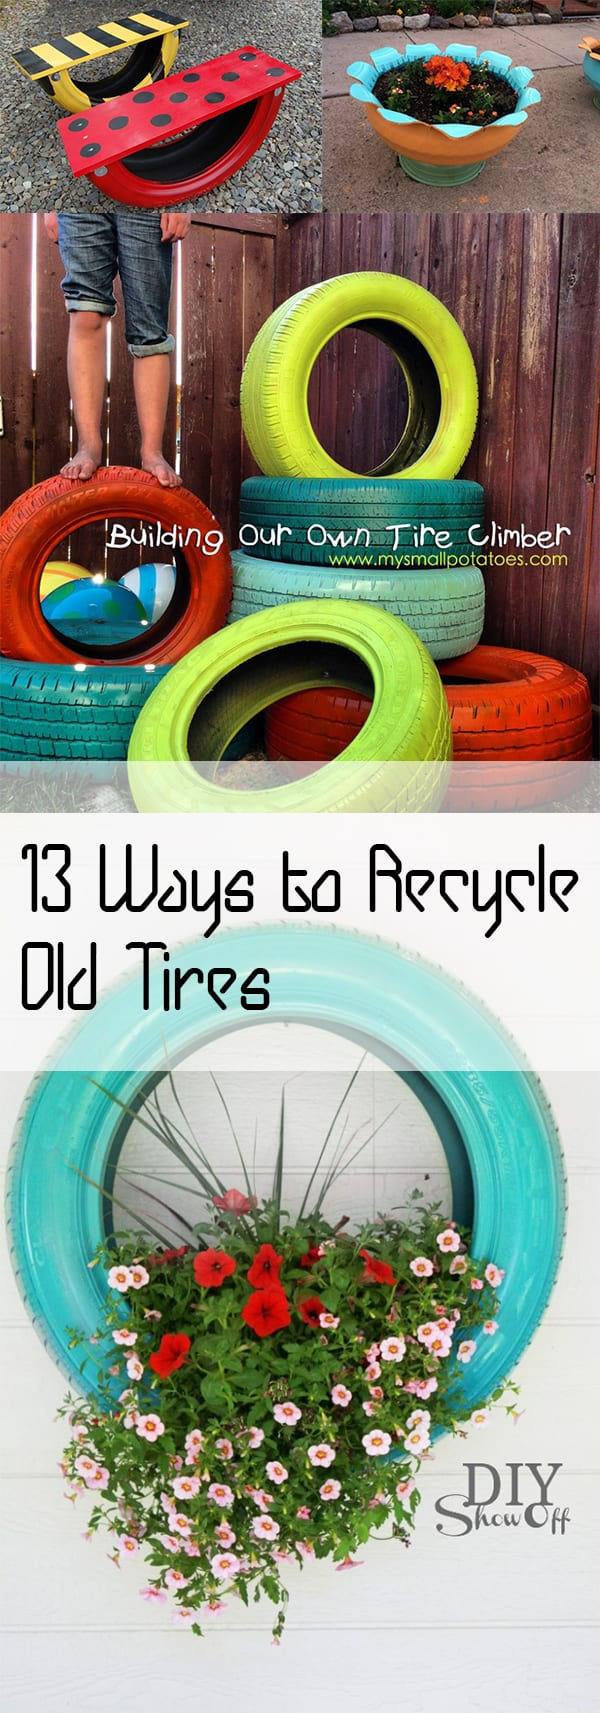 13 ways to recycle old tires how to build it - Diy projects using old tires ...